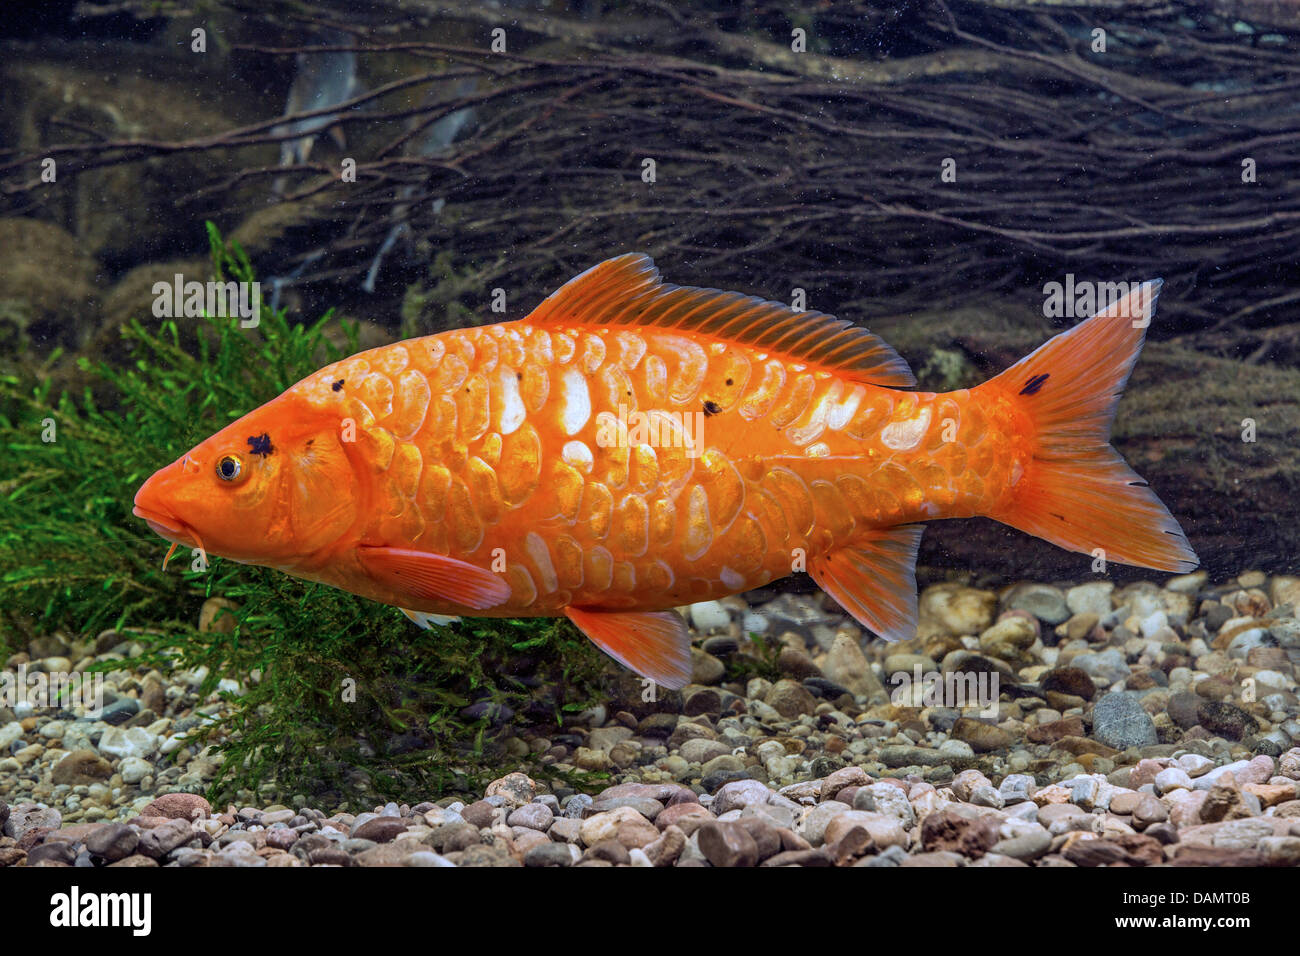 Koi carp cyprinus carpio with very large scales stock for Cyprinus carpio koi